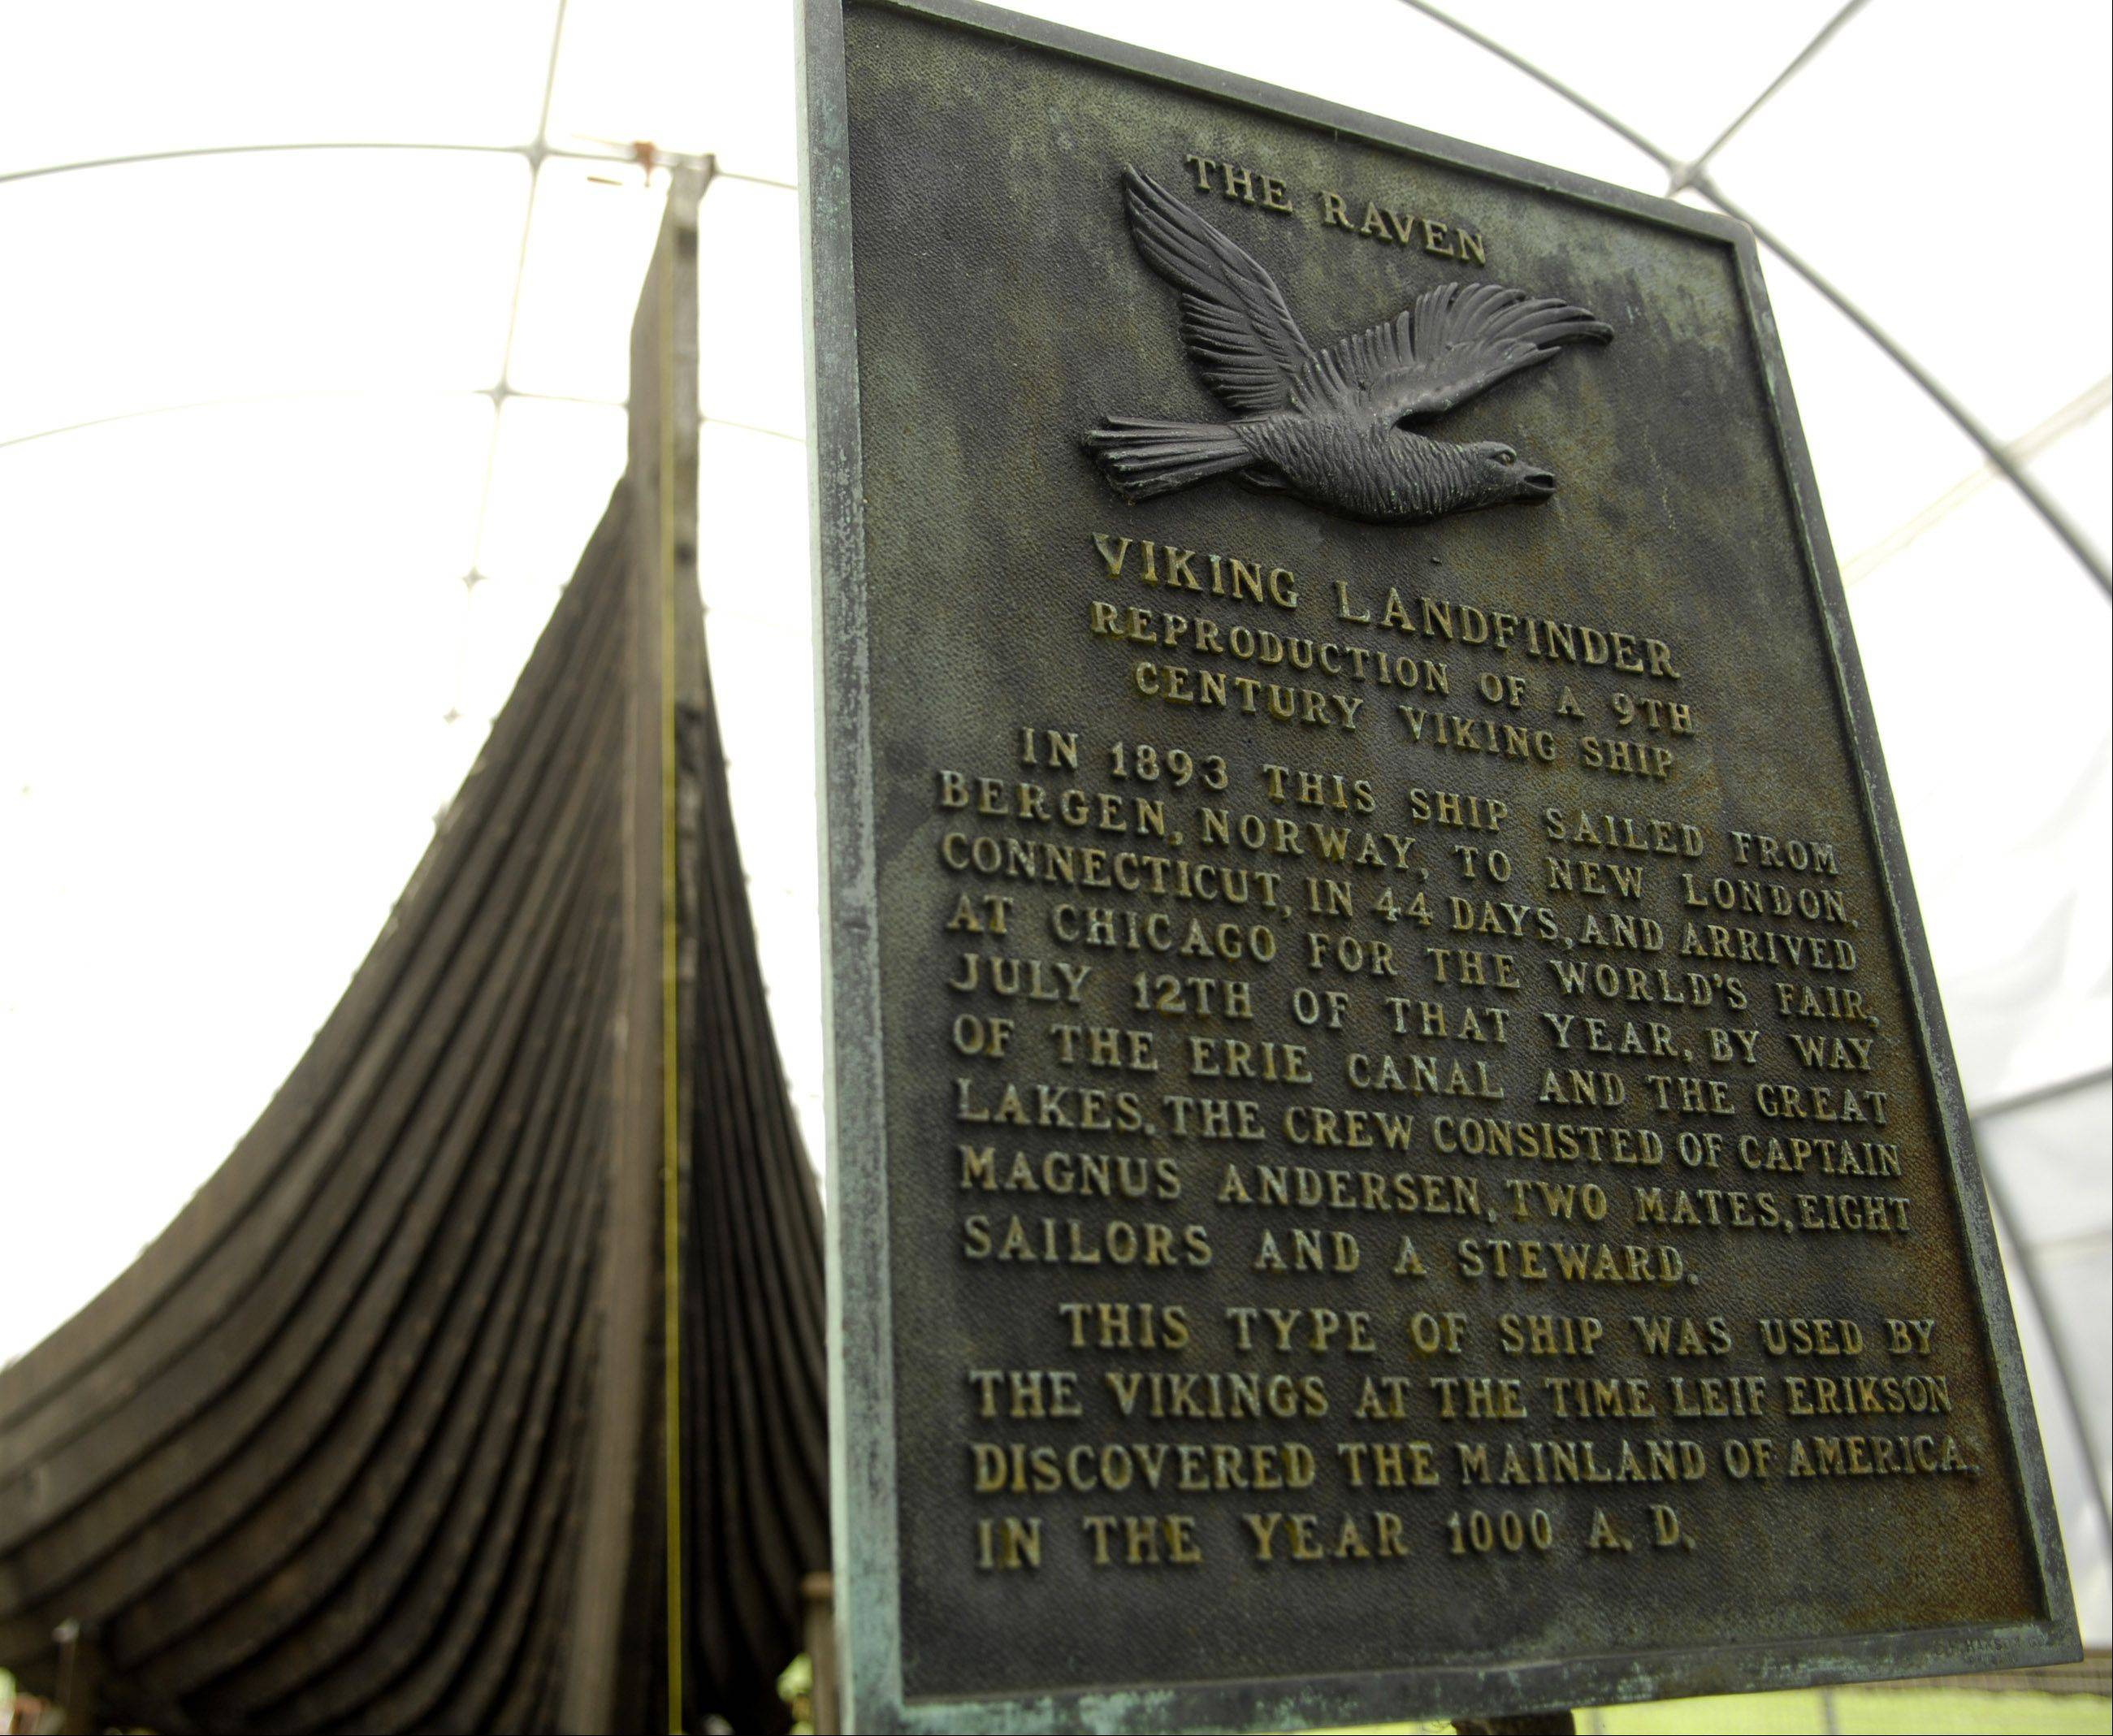 A plaque explains the history of the Raven, the Viking ship on display at Good Templar Park in Geneva. Friends of the Viking Ship will host a Viking Visitor's Day on Saturday.